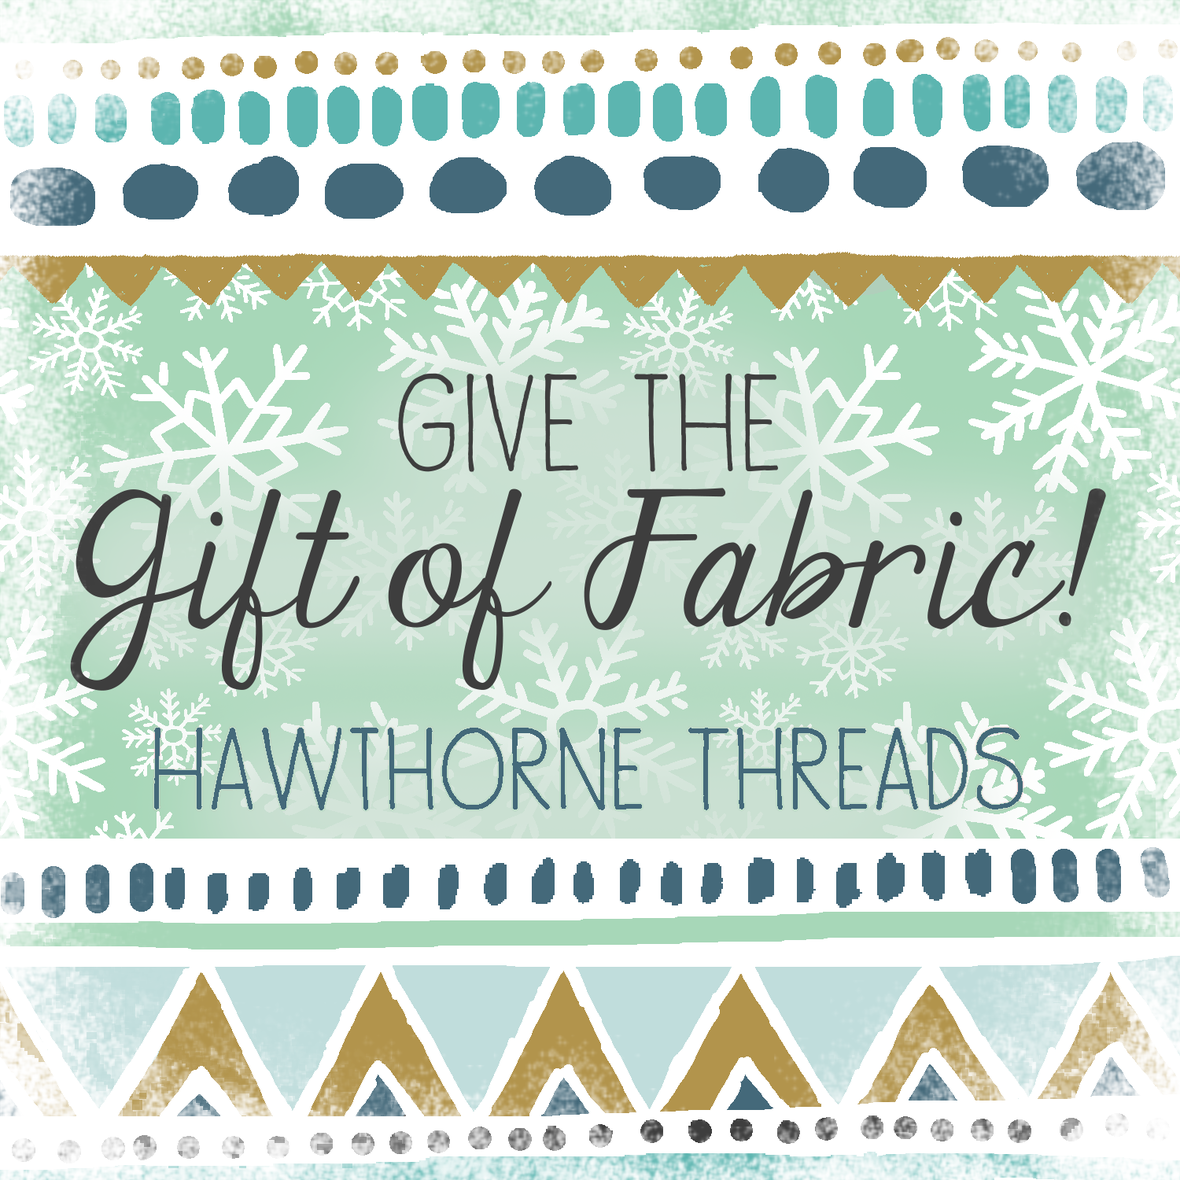 Hawthorne Gift Certificate 2017 with frosty border